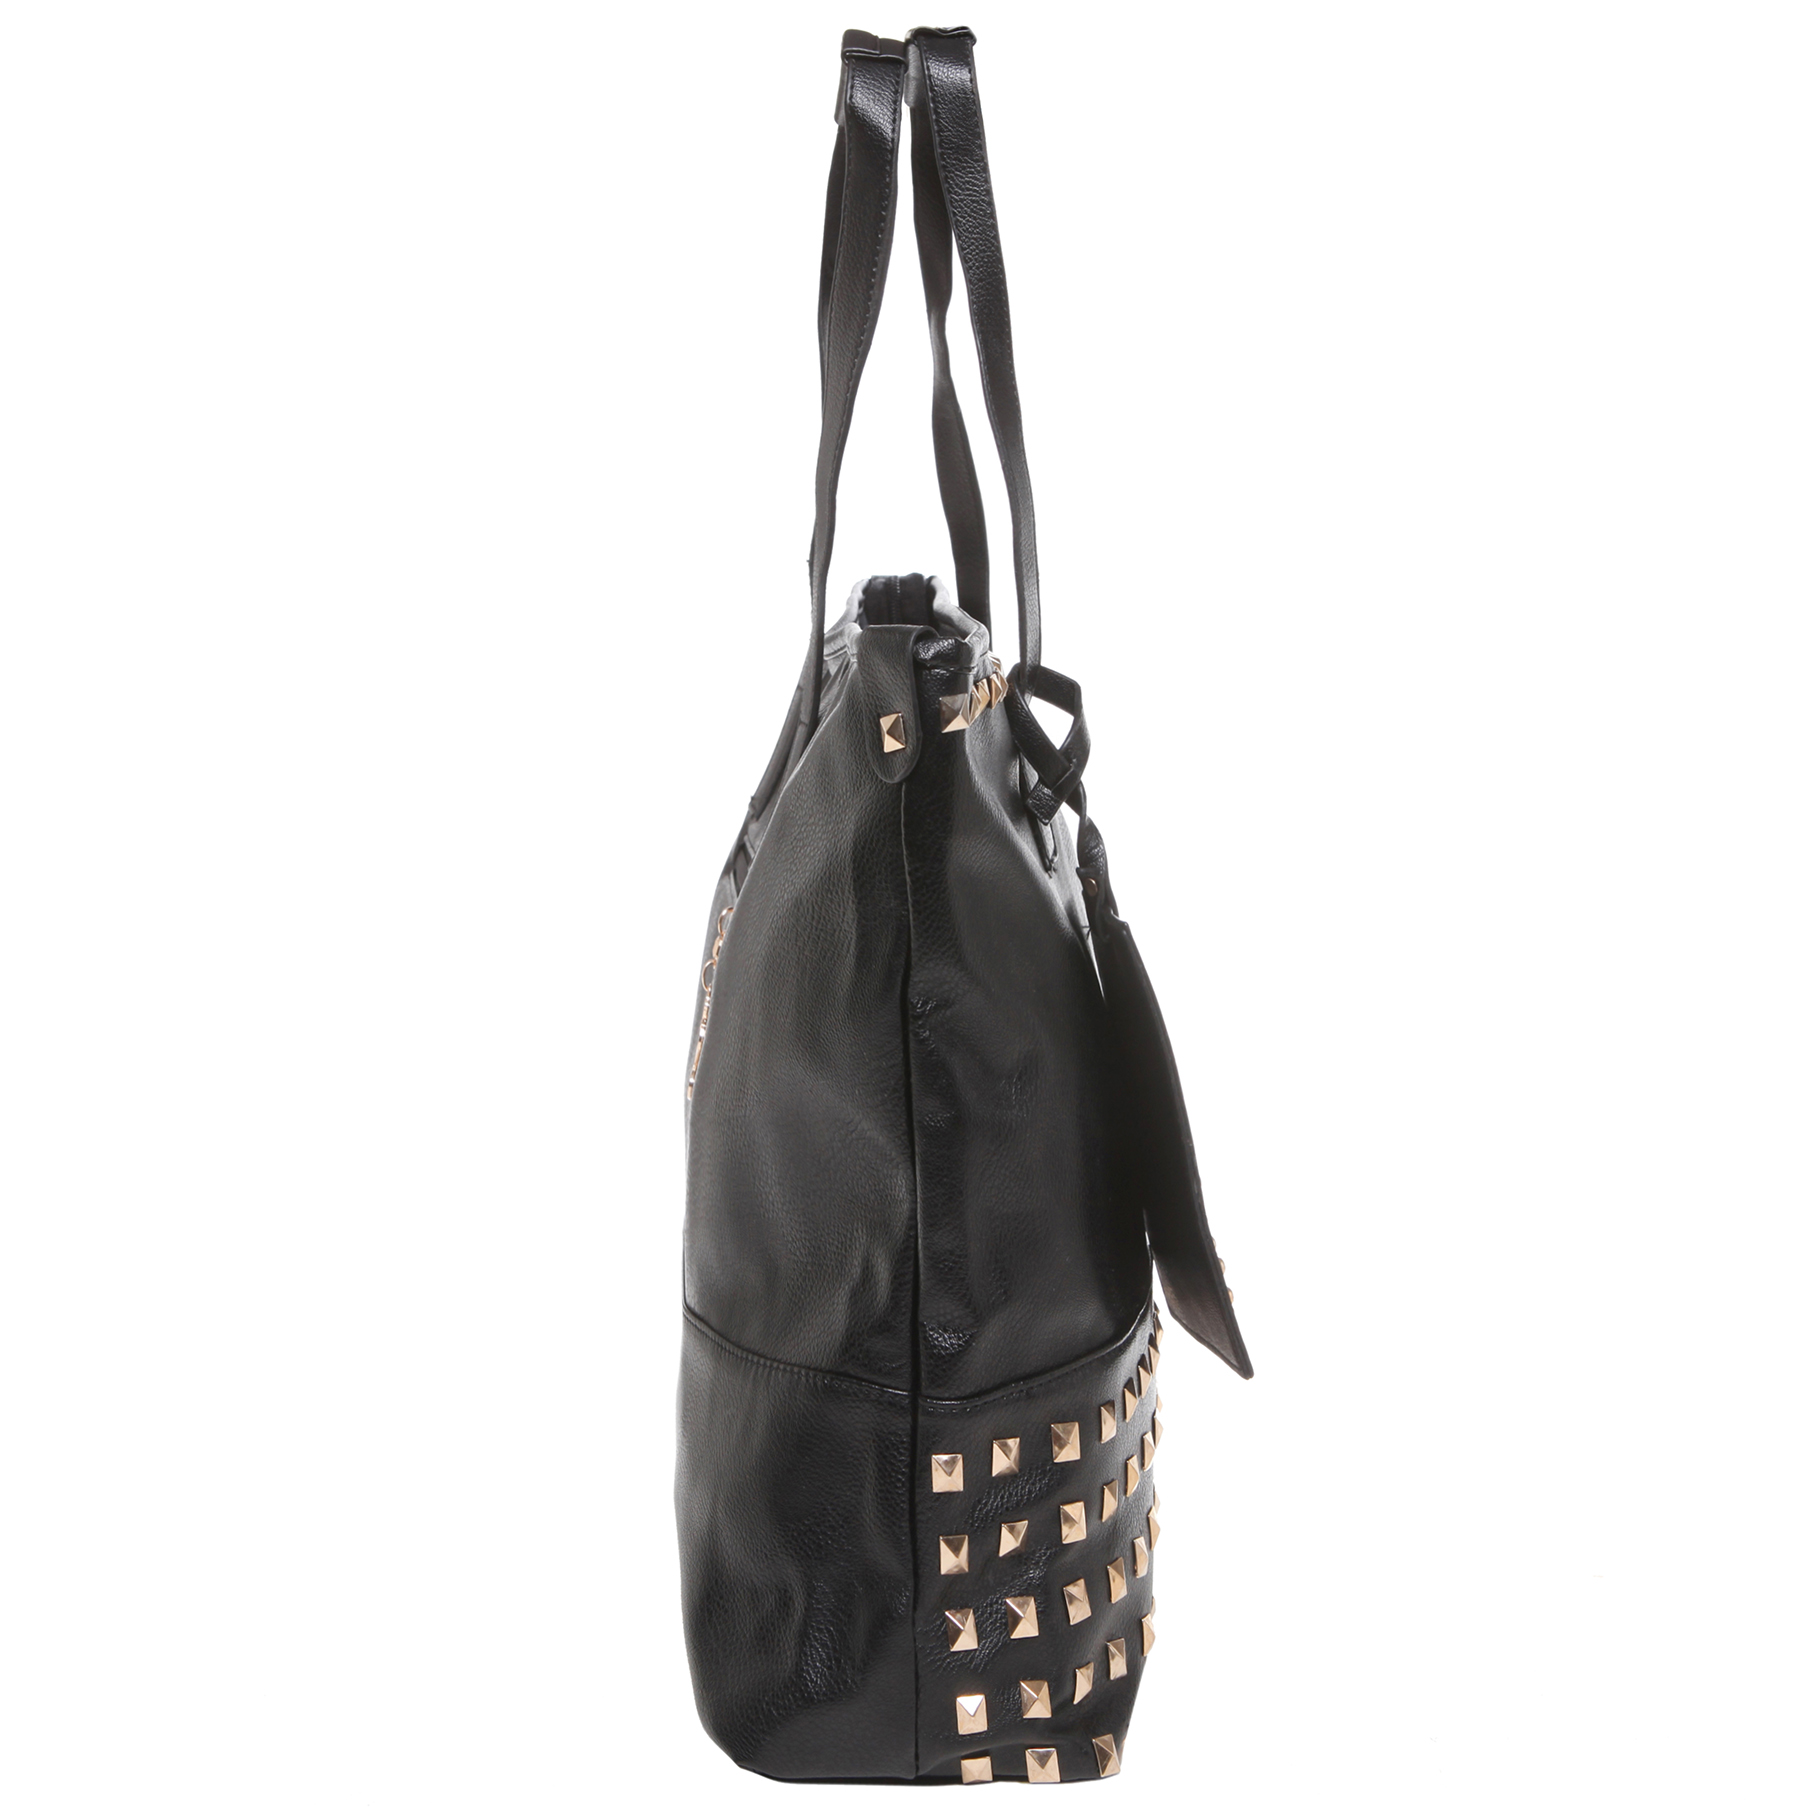 mg-collection-cosette-gothic-studded-shopper-tb-h0418blk-3.jpg